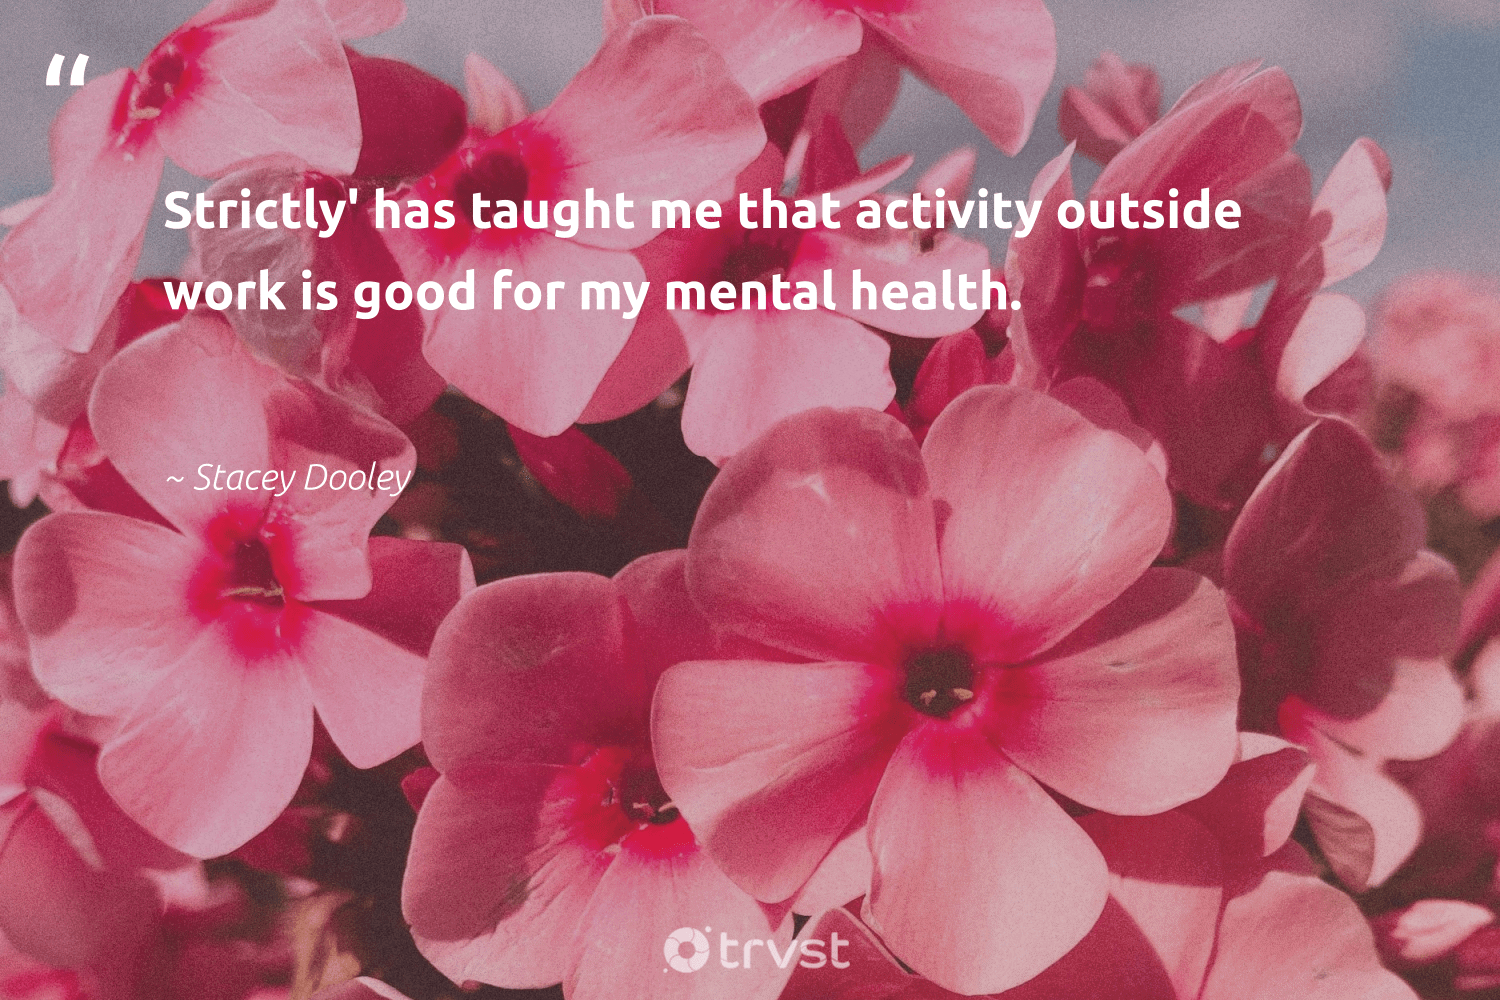 """""""Strictly' has taught me that activity outside work is good for my mental health.""""  - Stacey Dooley #trvst #quotes #mentalhealth #health #depression #togetherwecan #nevergiveup #ecoconscious #anxiety #mindset #begreat #beinspired"""